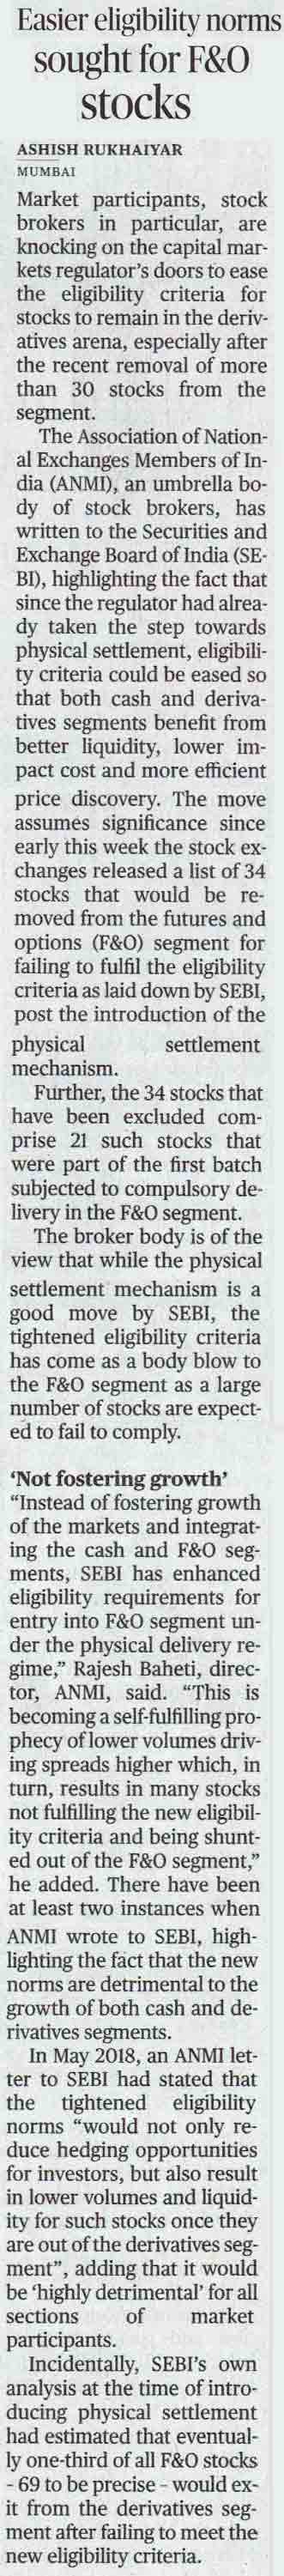 Easier eligibility norms sought for F&O stocks